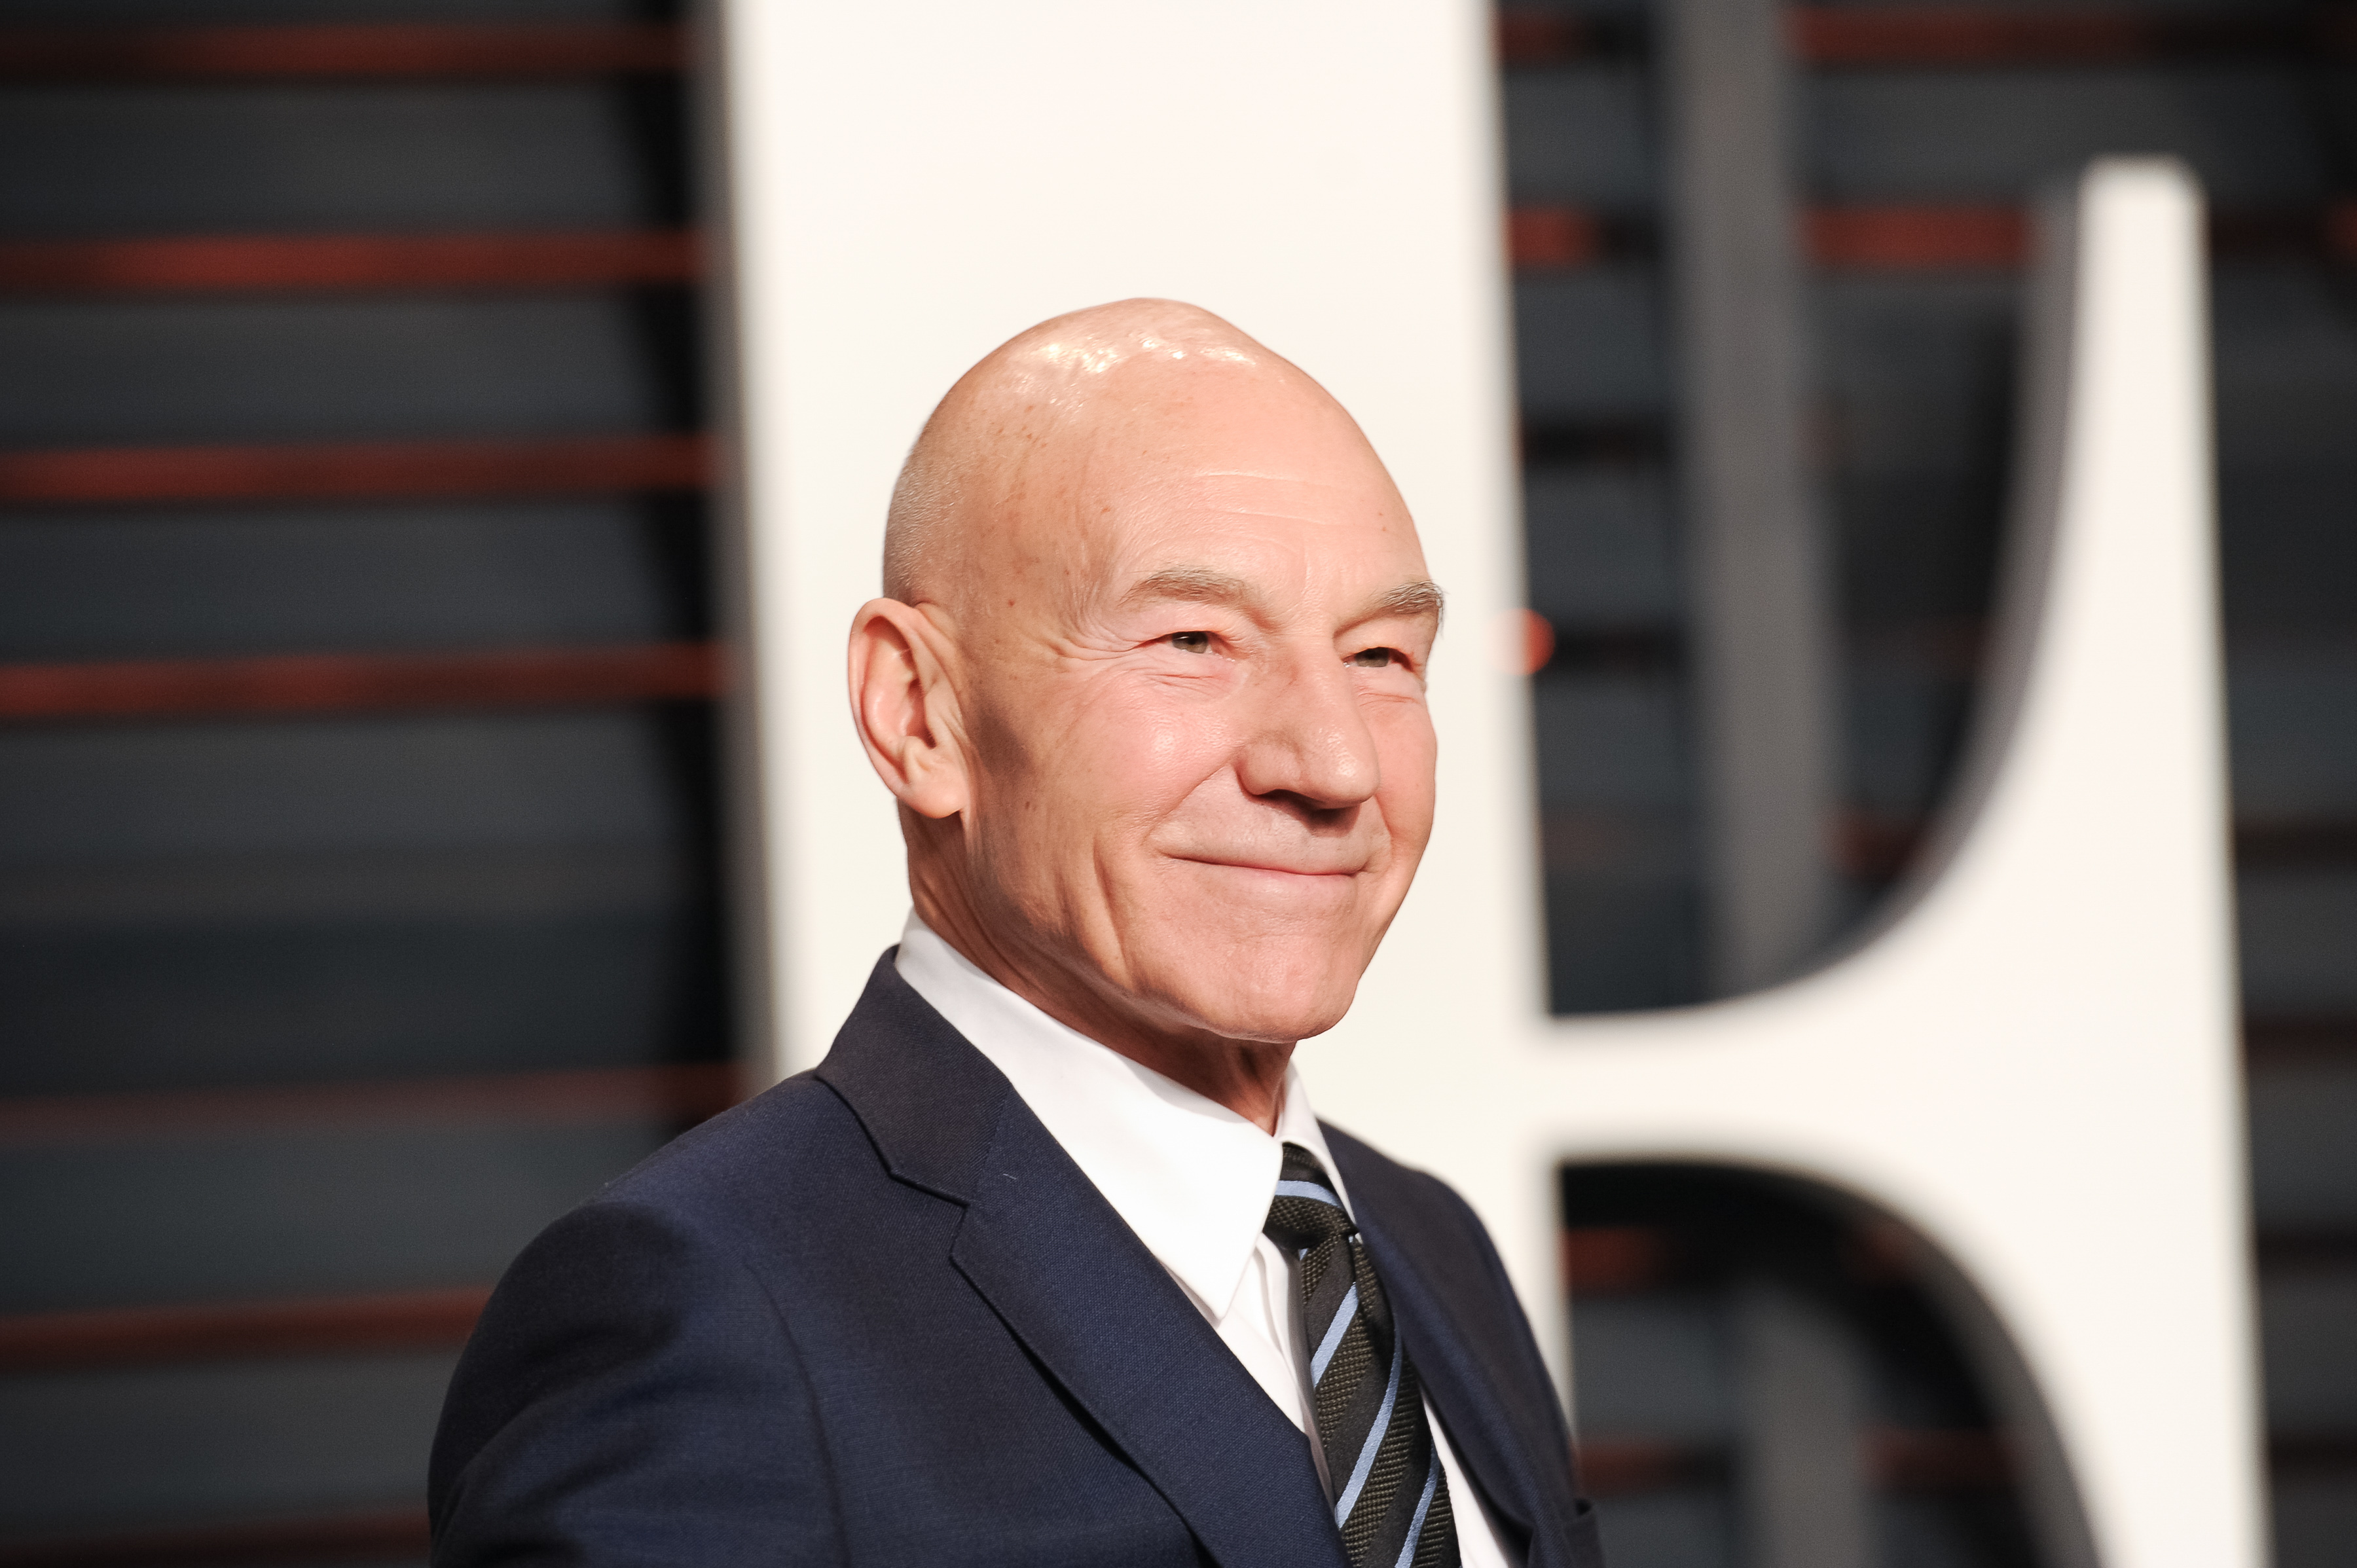 Patrick Stewart at the Vanity Fair Oscar Party in 2015.